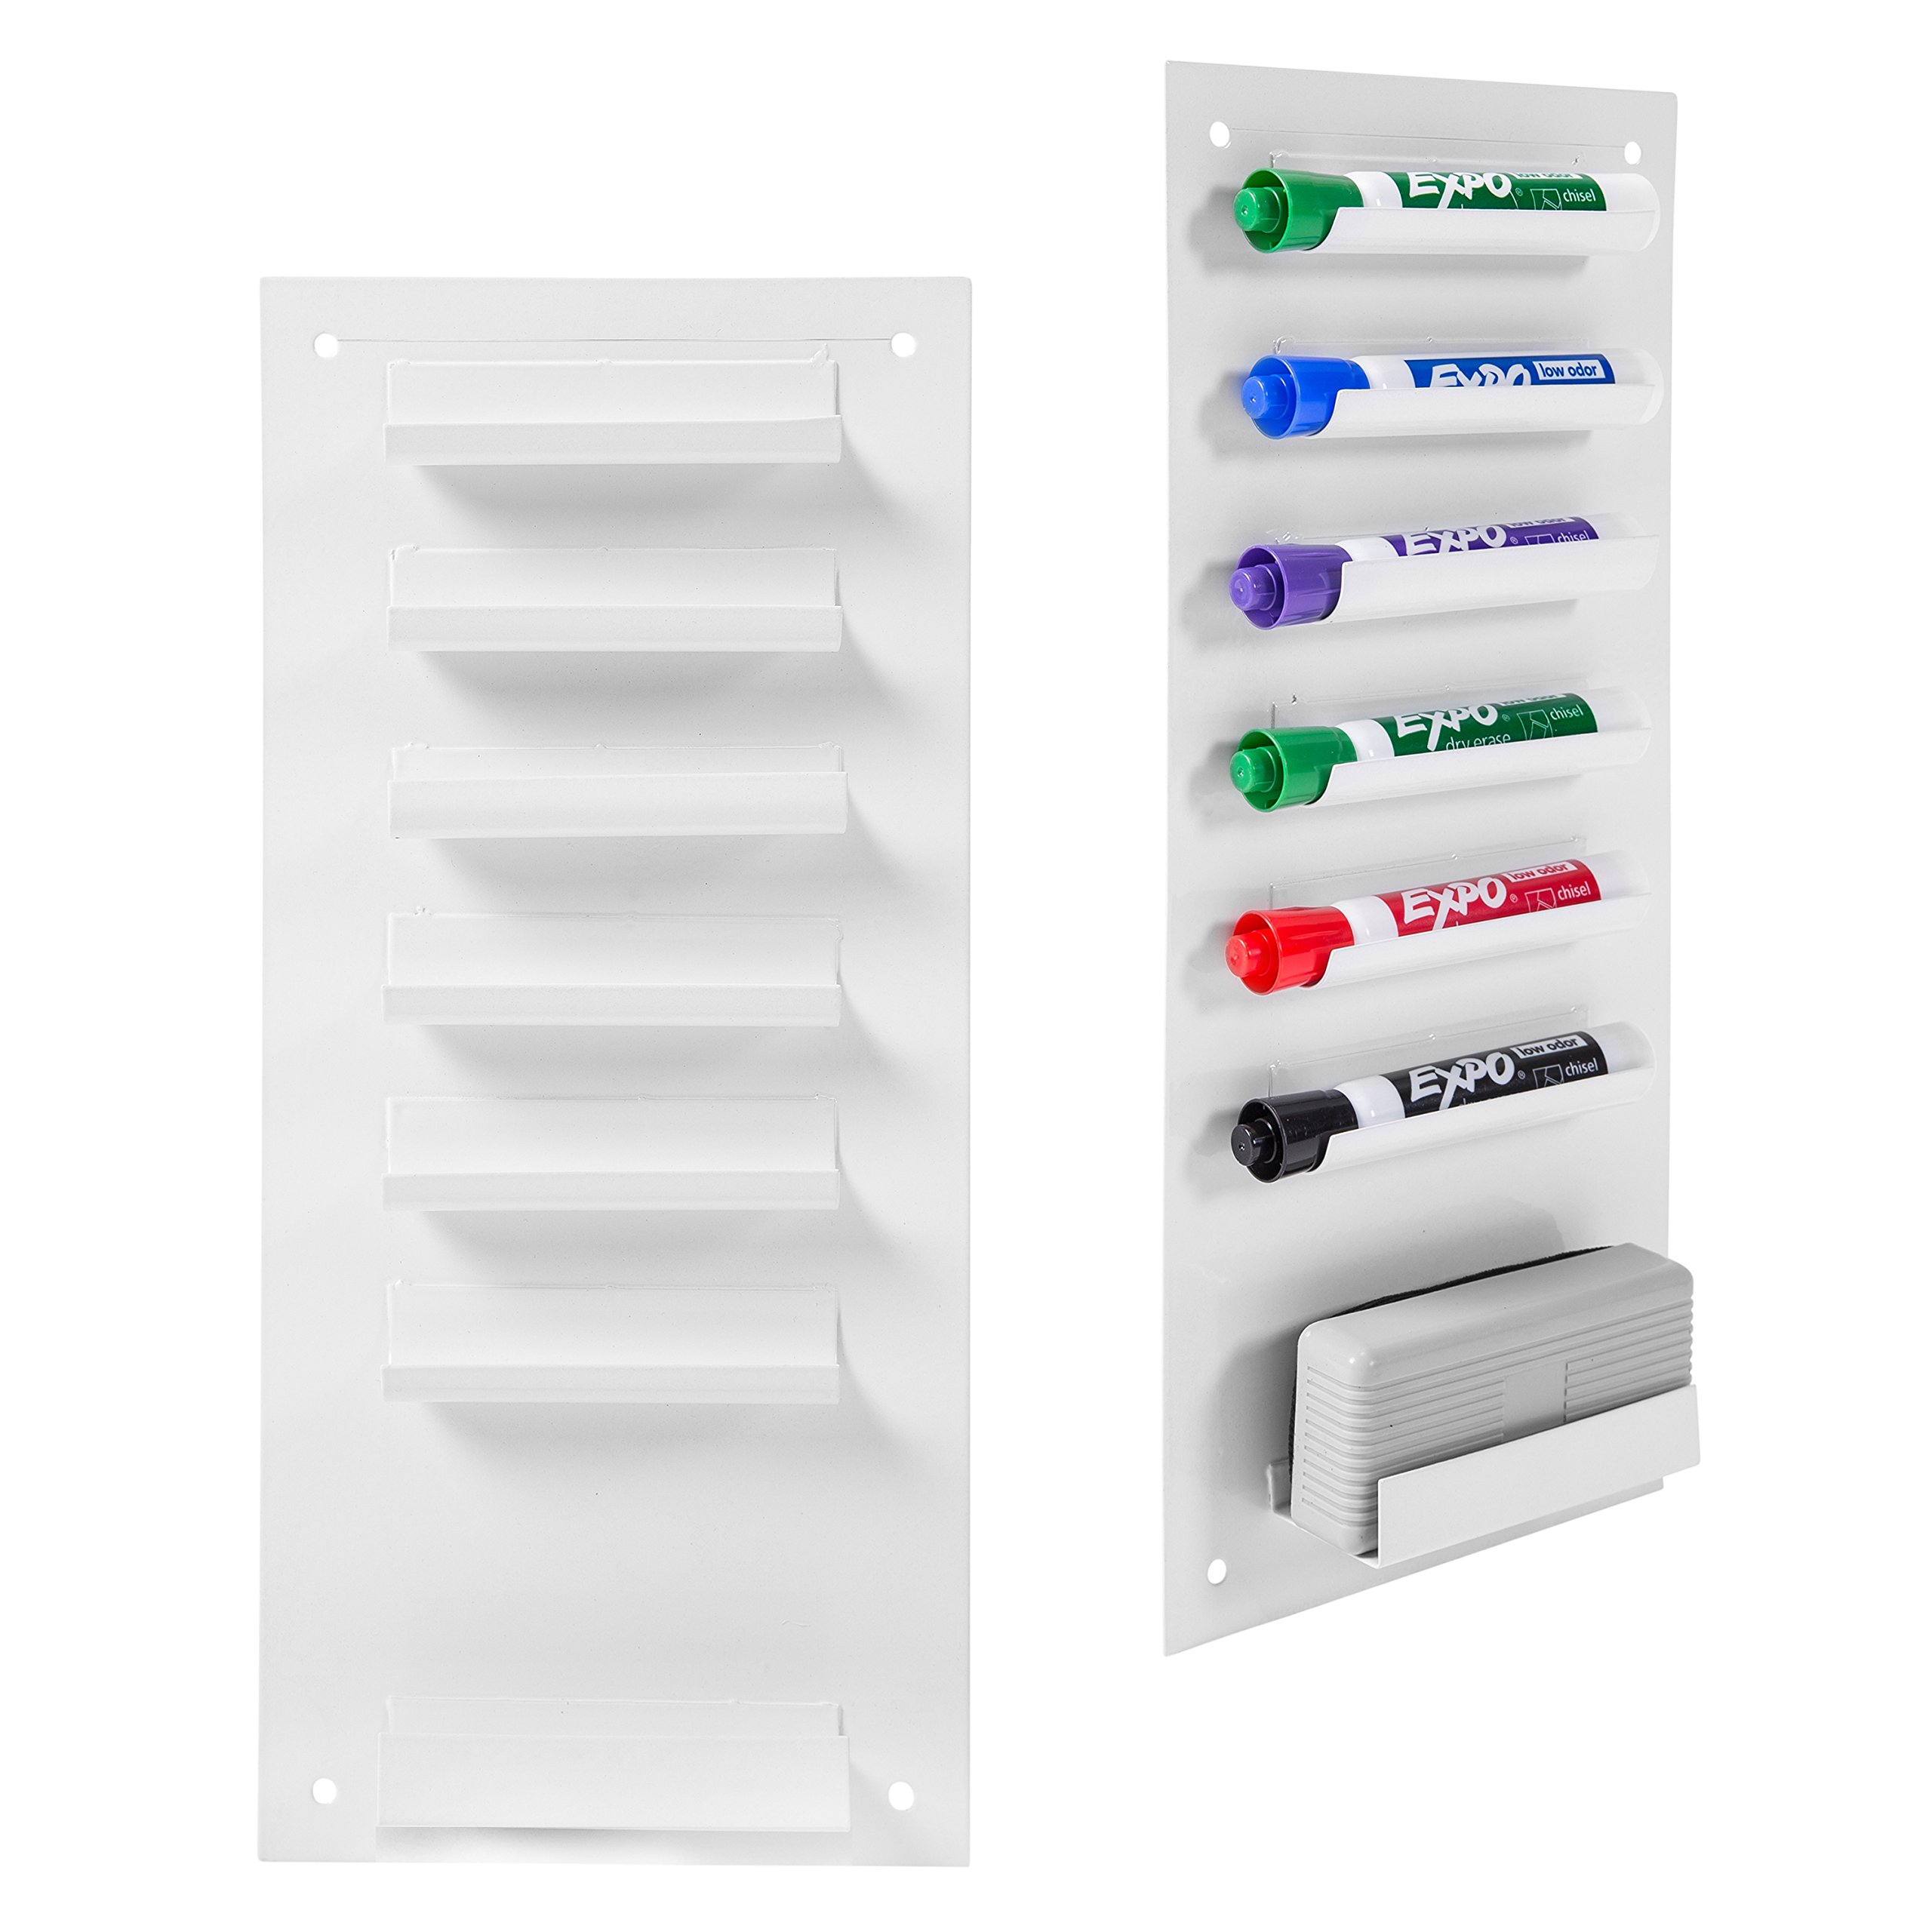 6-Slot Wall Mounted Metal Dry Erase Marker and Eraser Holder/Vertical Storage System, White (Set of 2) by MyGift (Image #1)